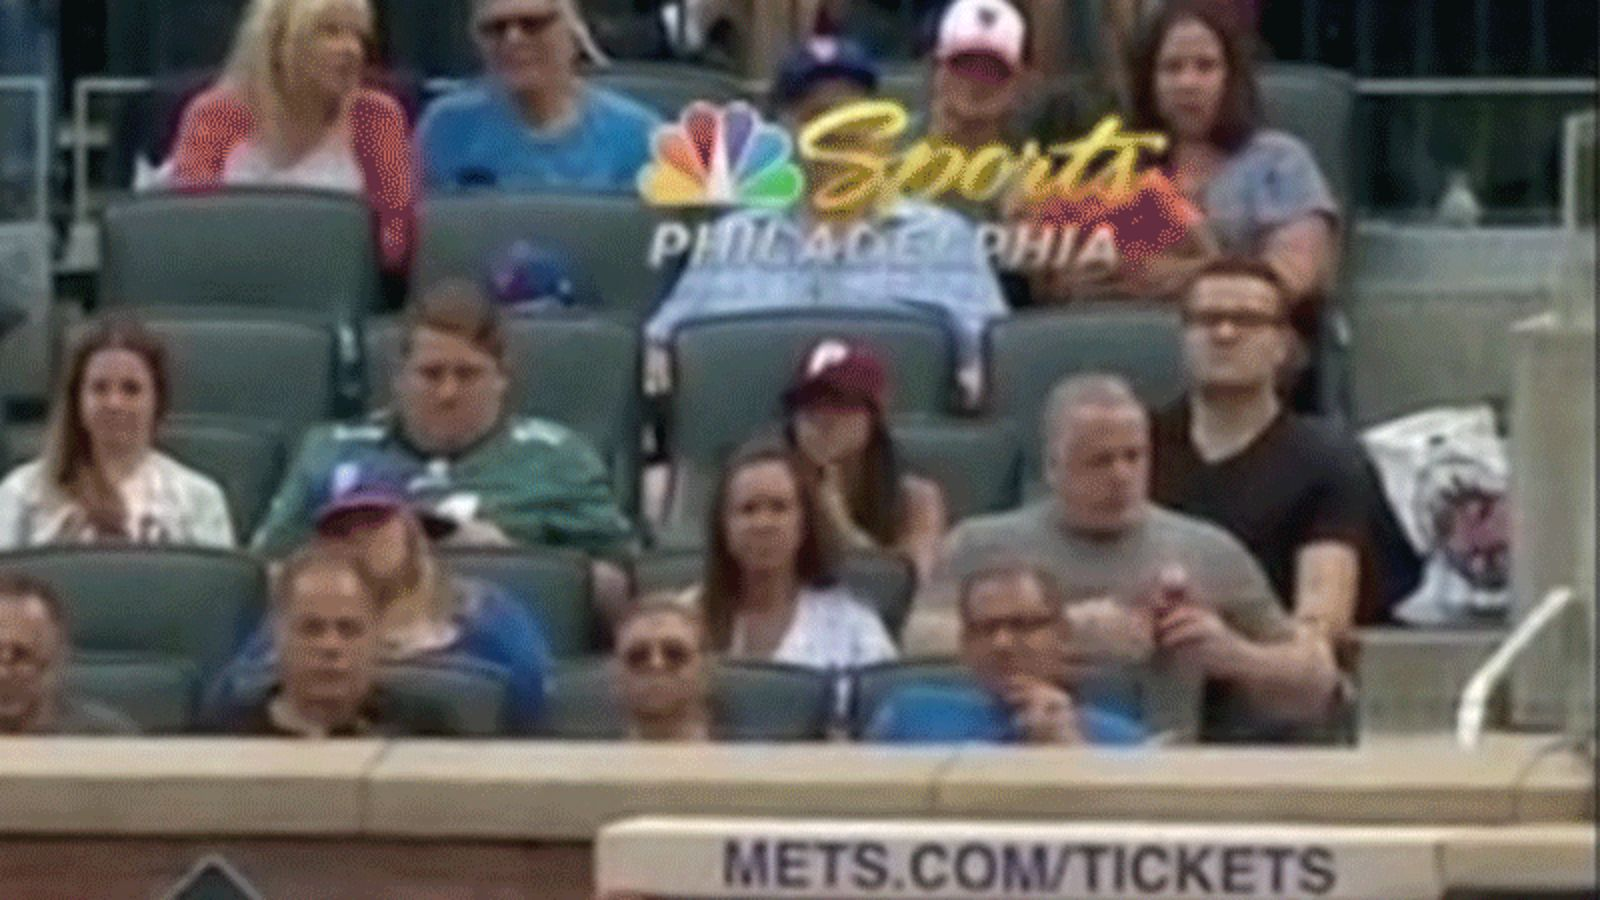 Fan at Mets-Phillies game reacts to bug, goes viral: report